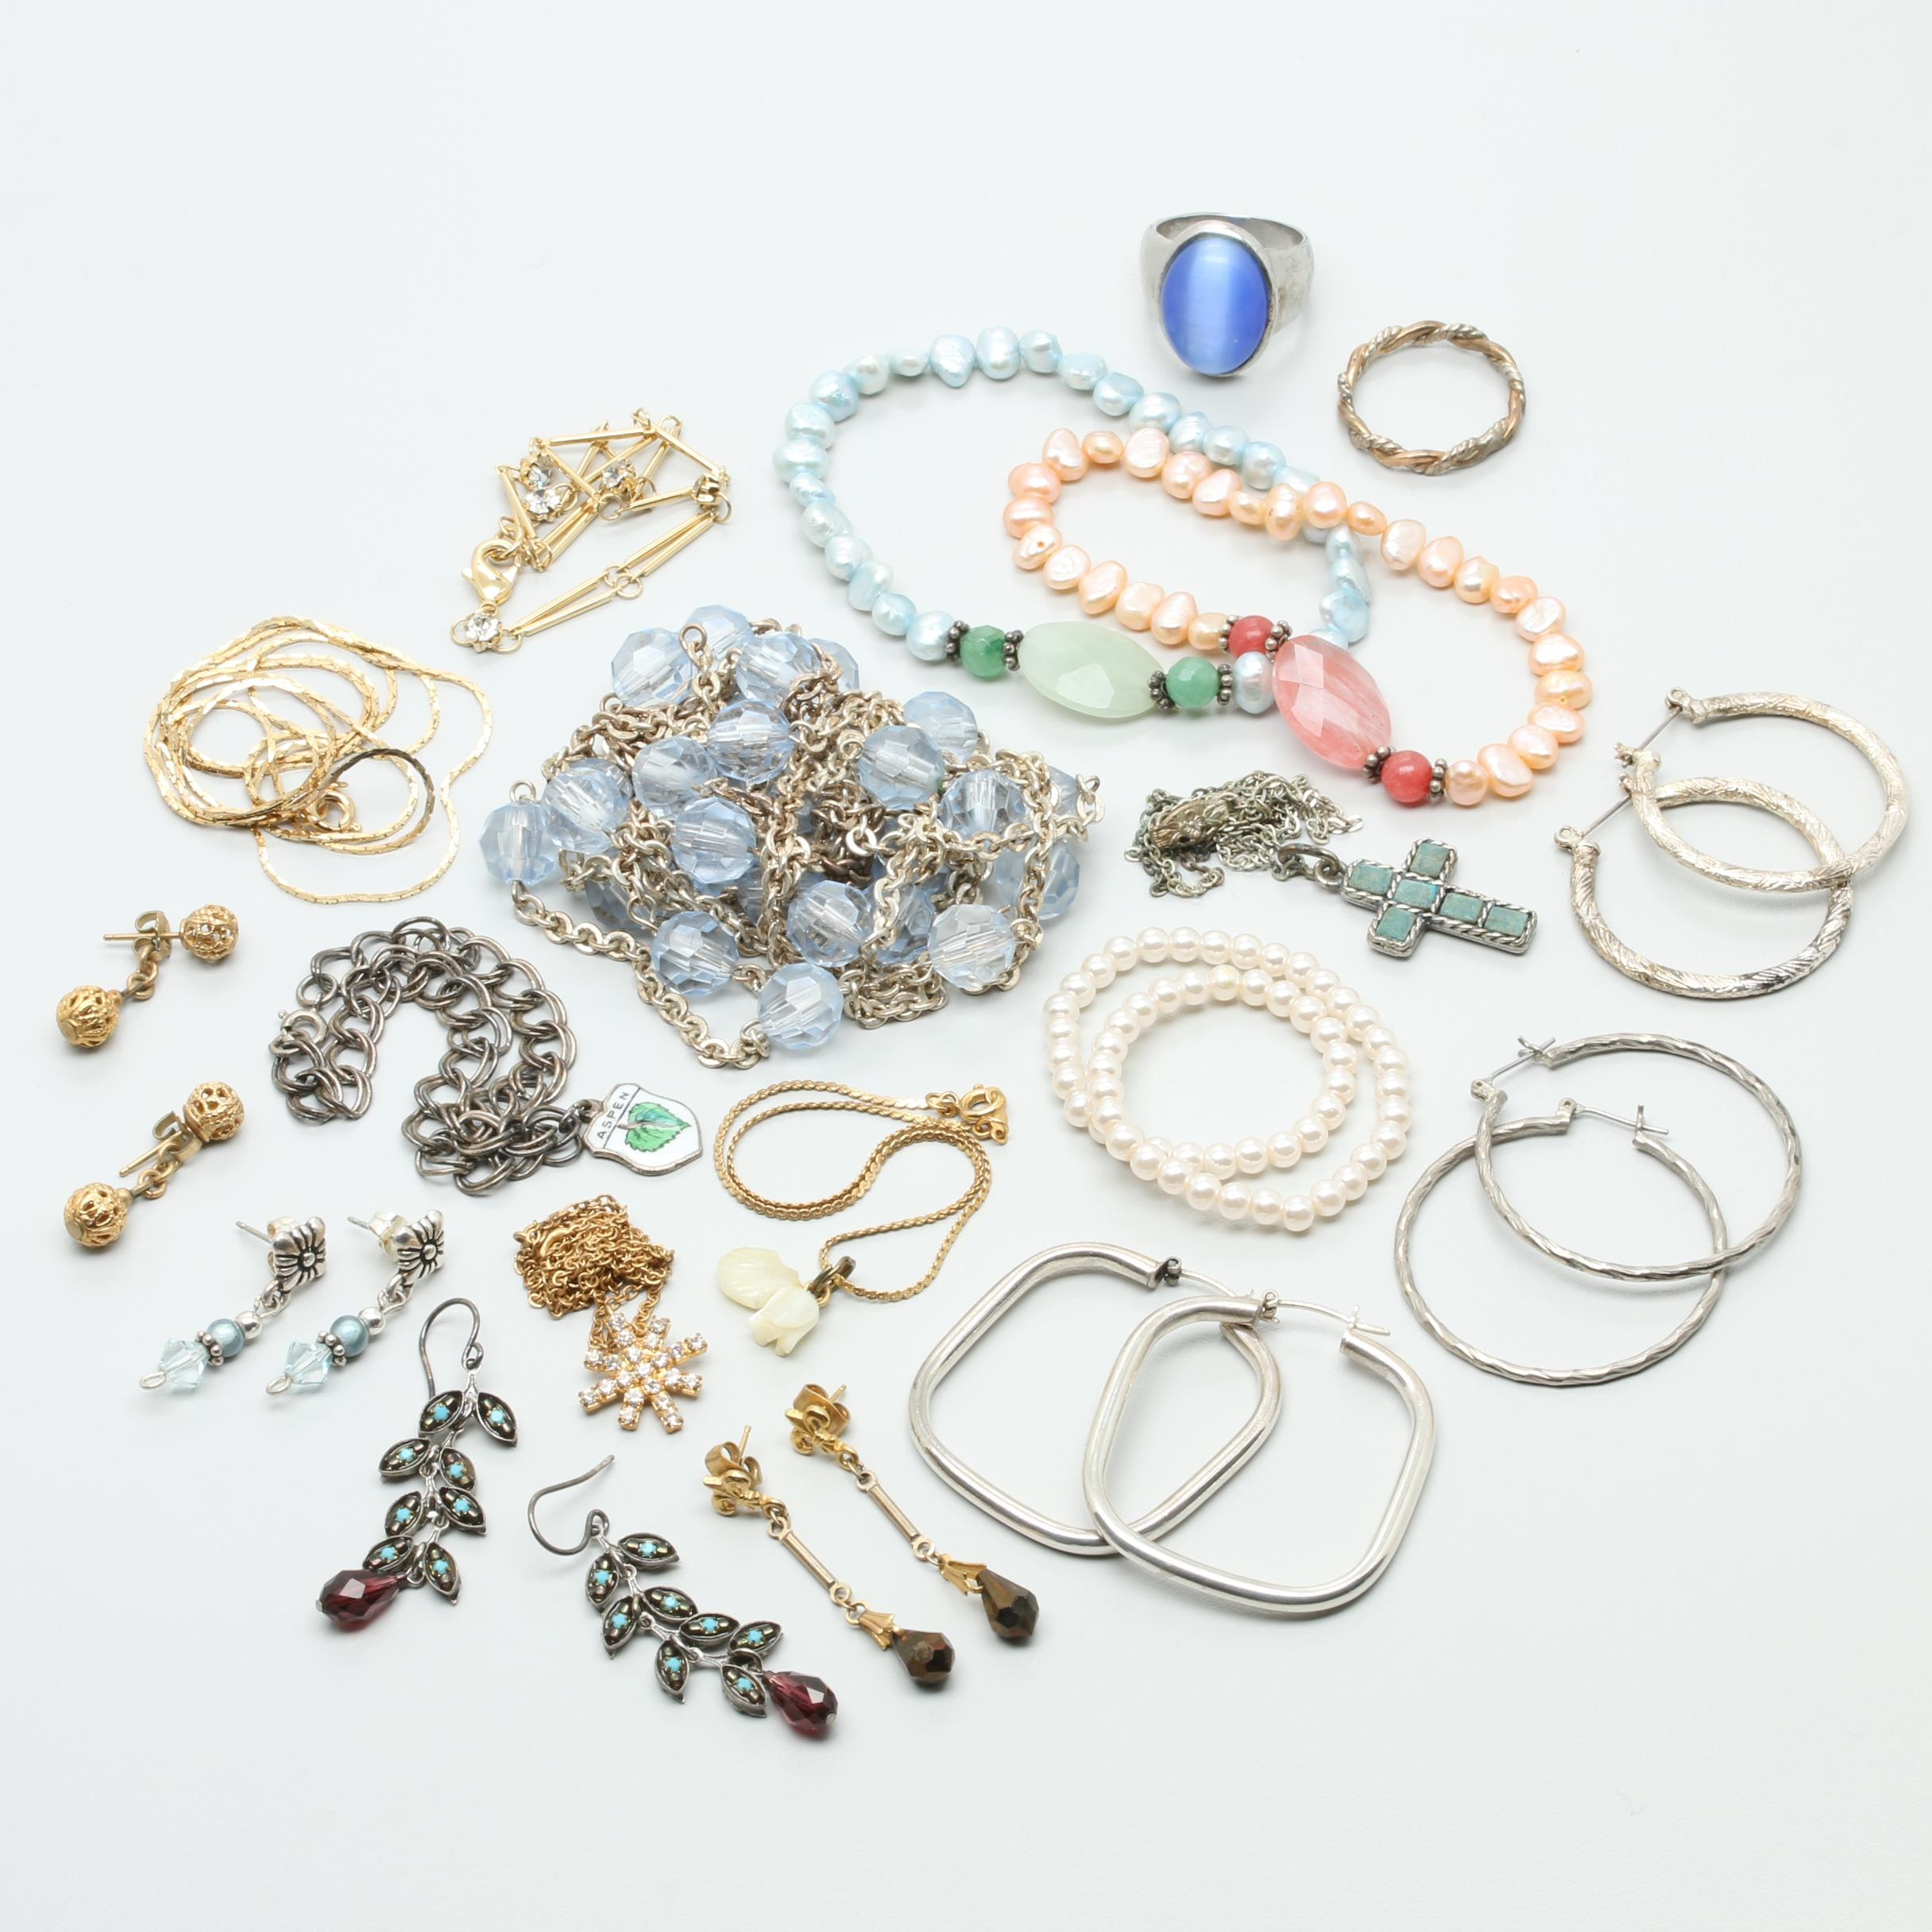 Assortment of Costume Cultured Pearl, Imitation Pearl and Glass Jewelry